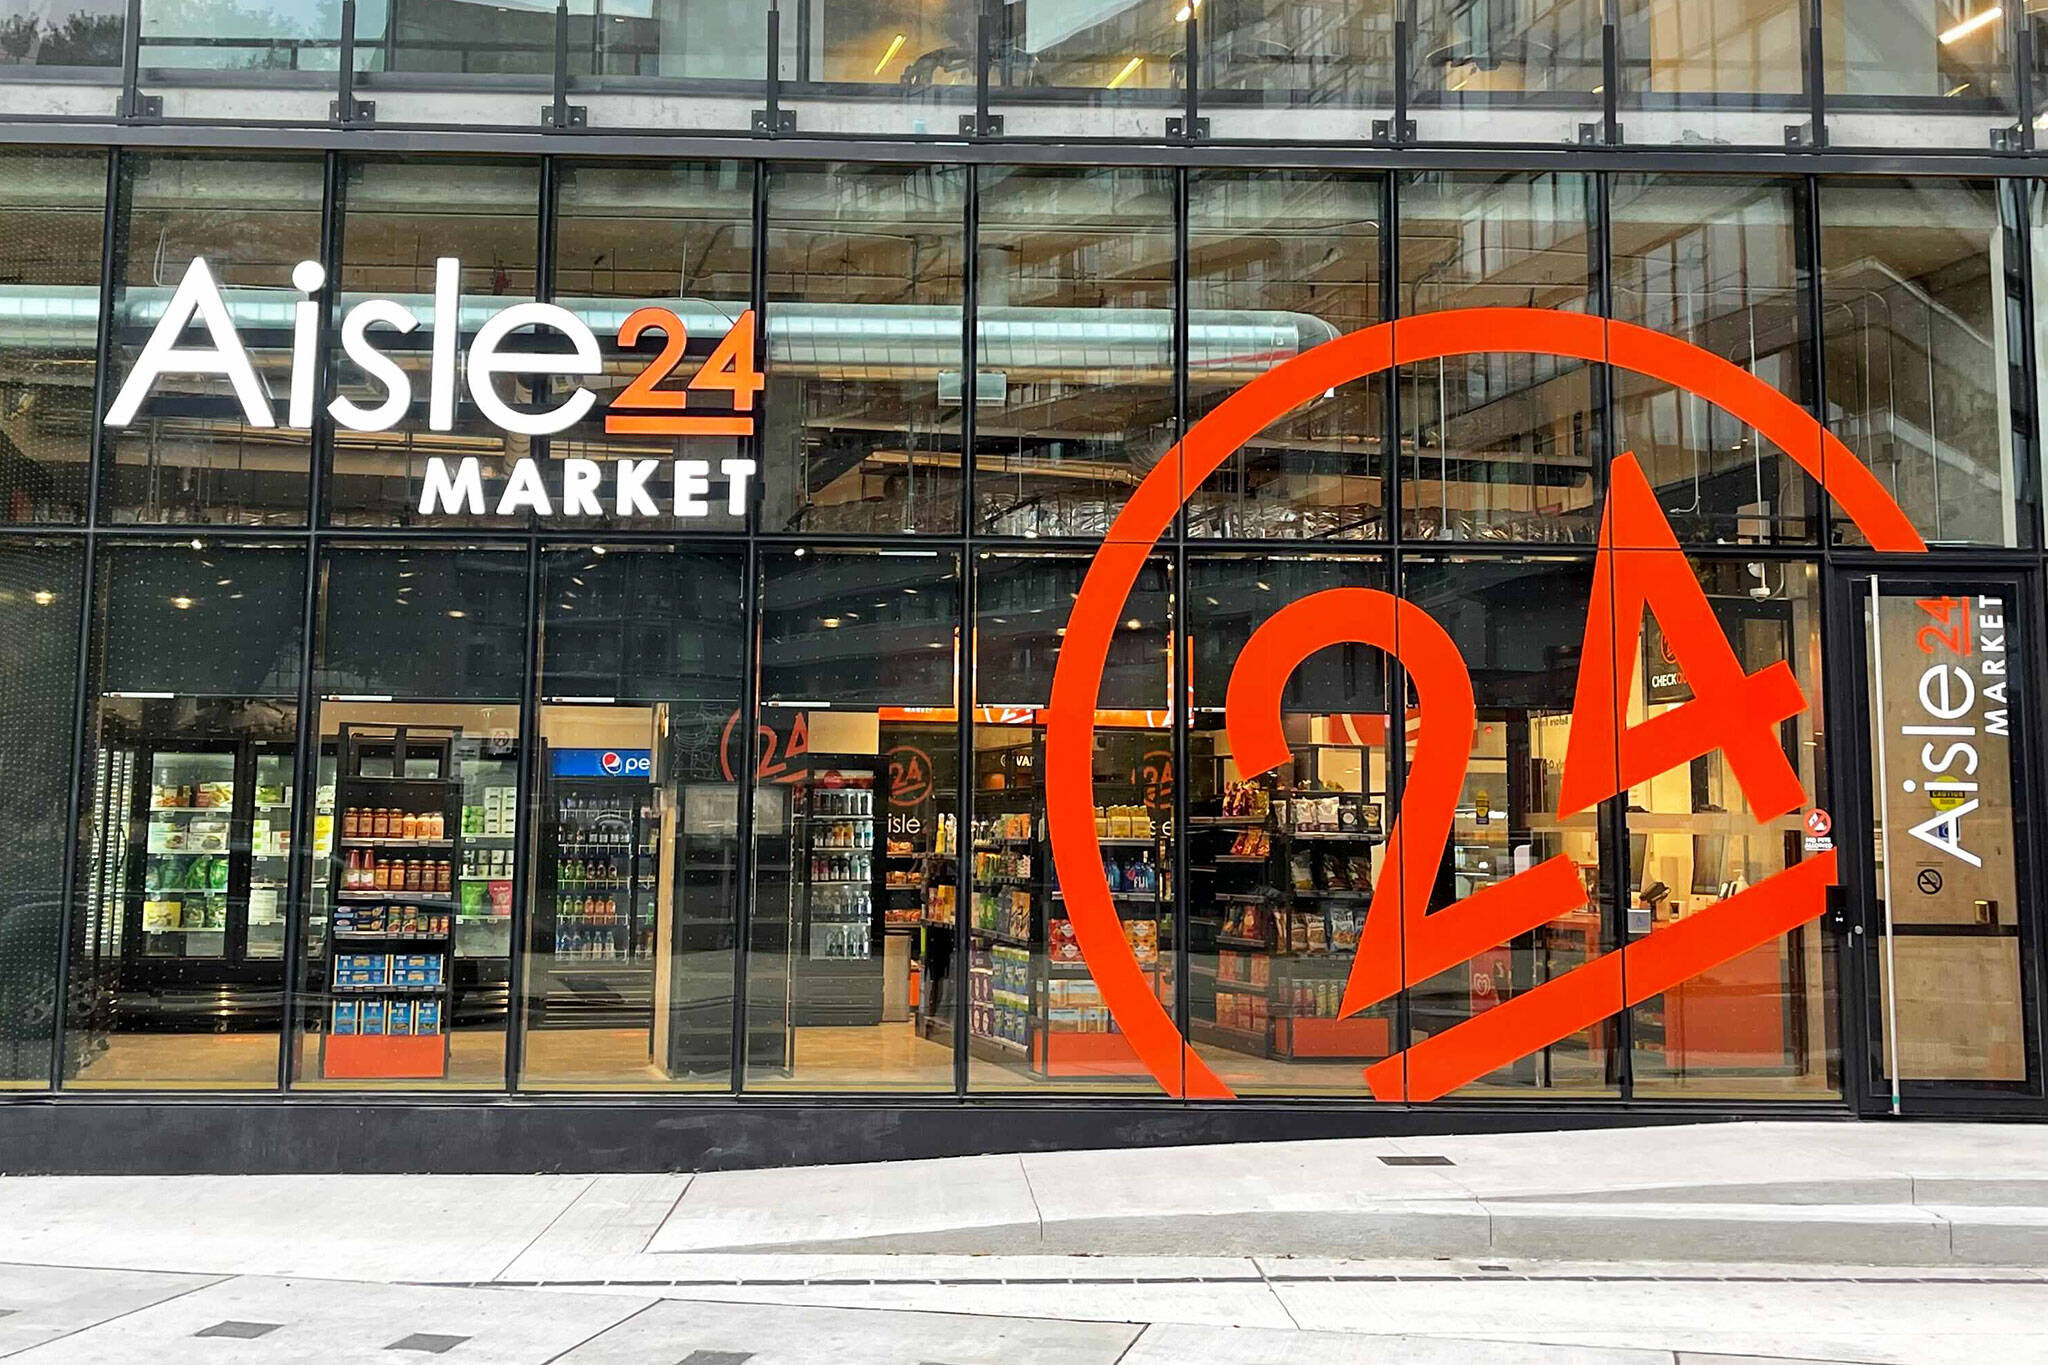 Toronto just got self-serve 24 hour convenience stores with no employees